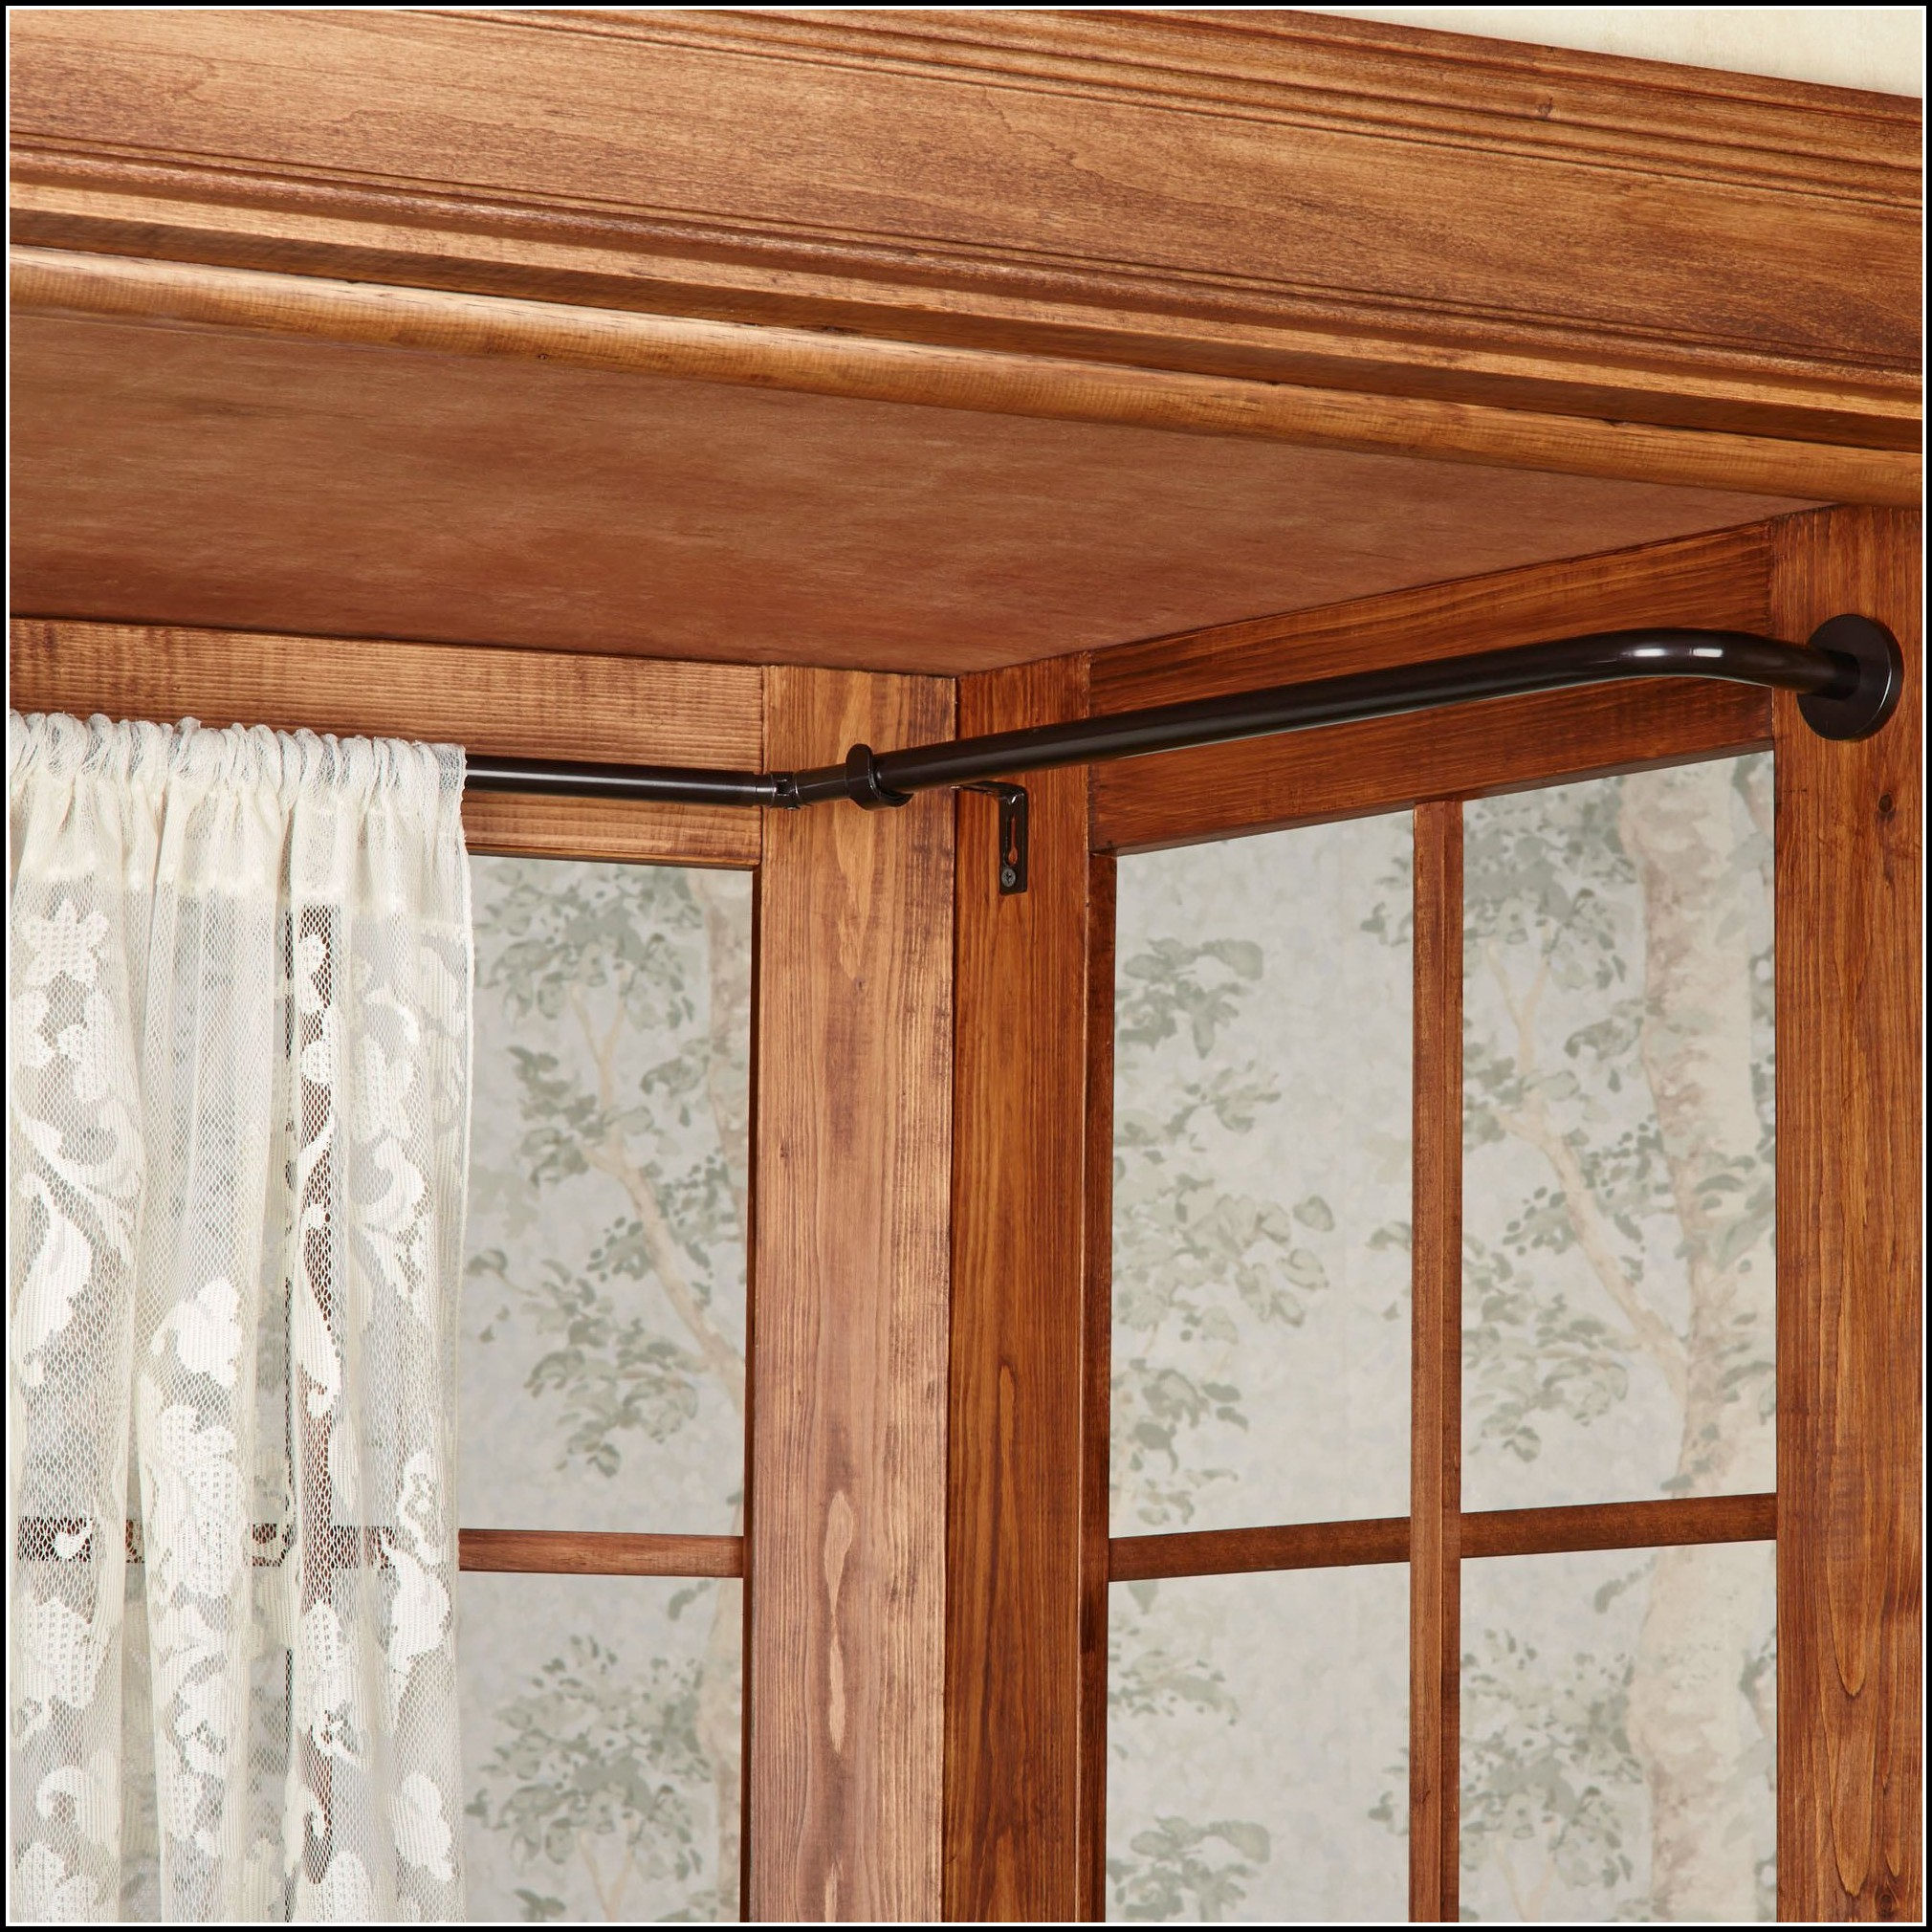 Bendable Curtain Rods For Bay Windows